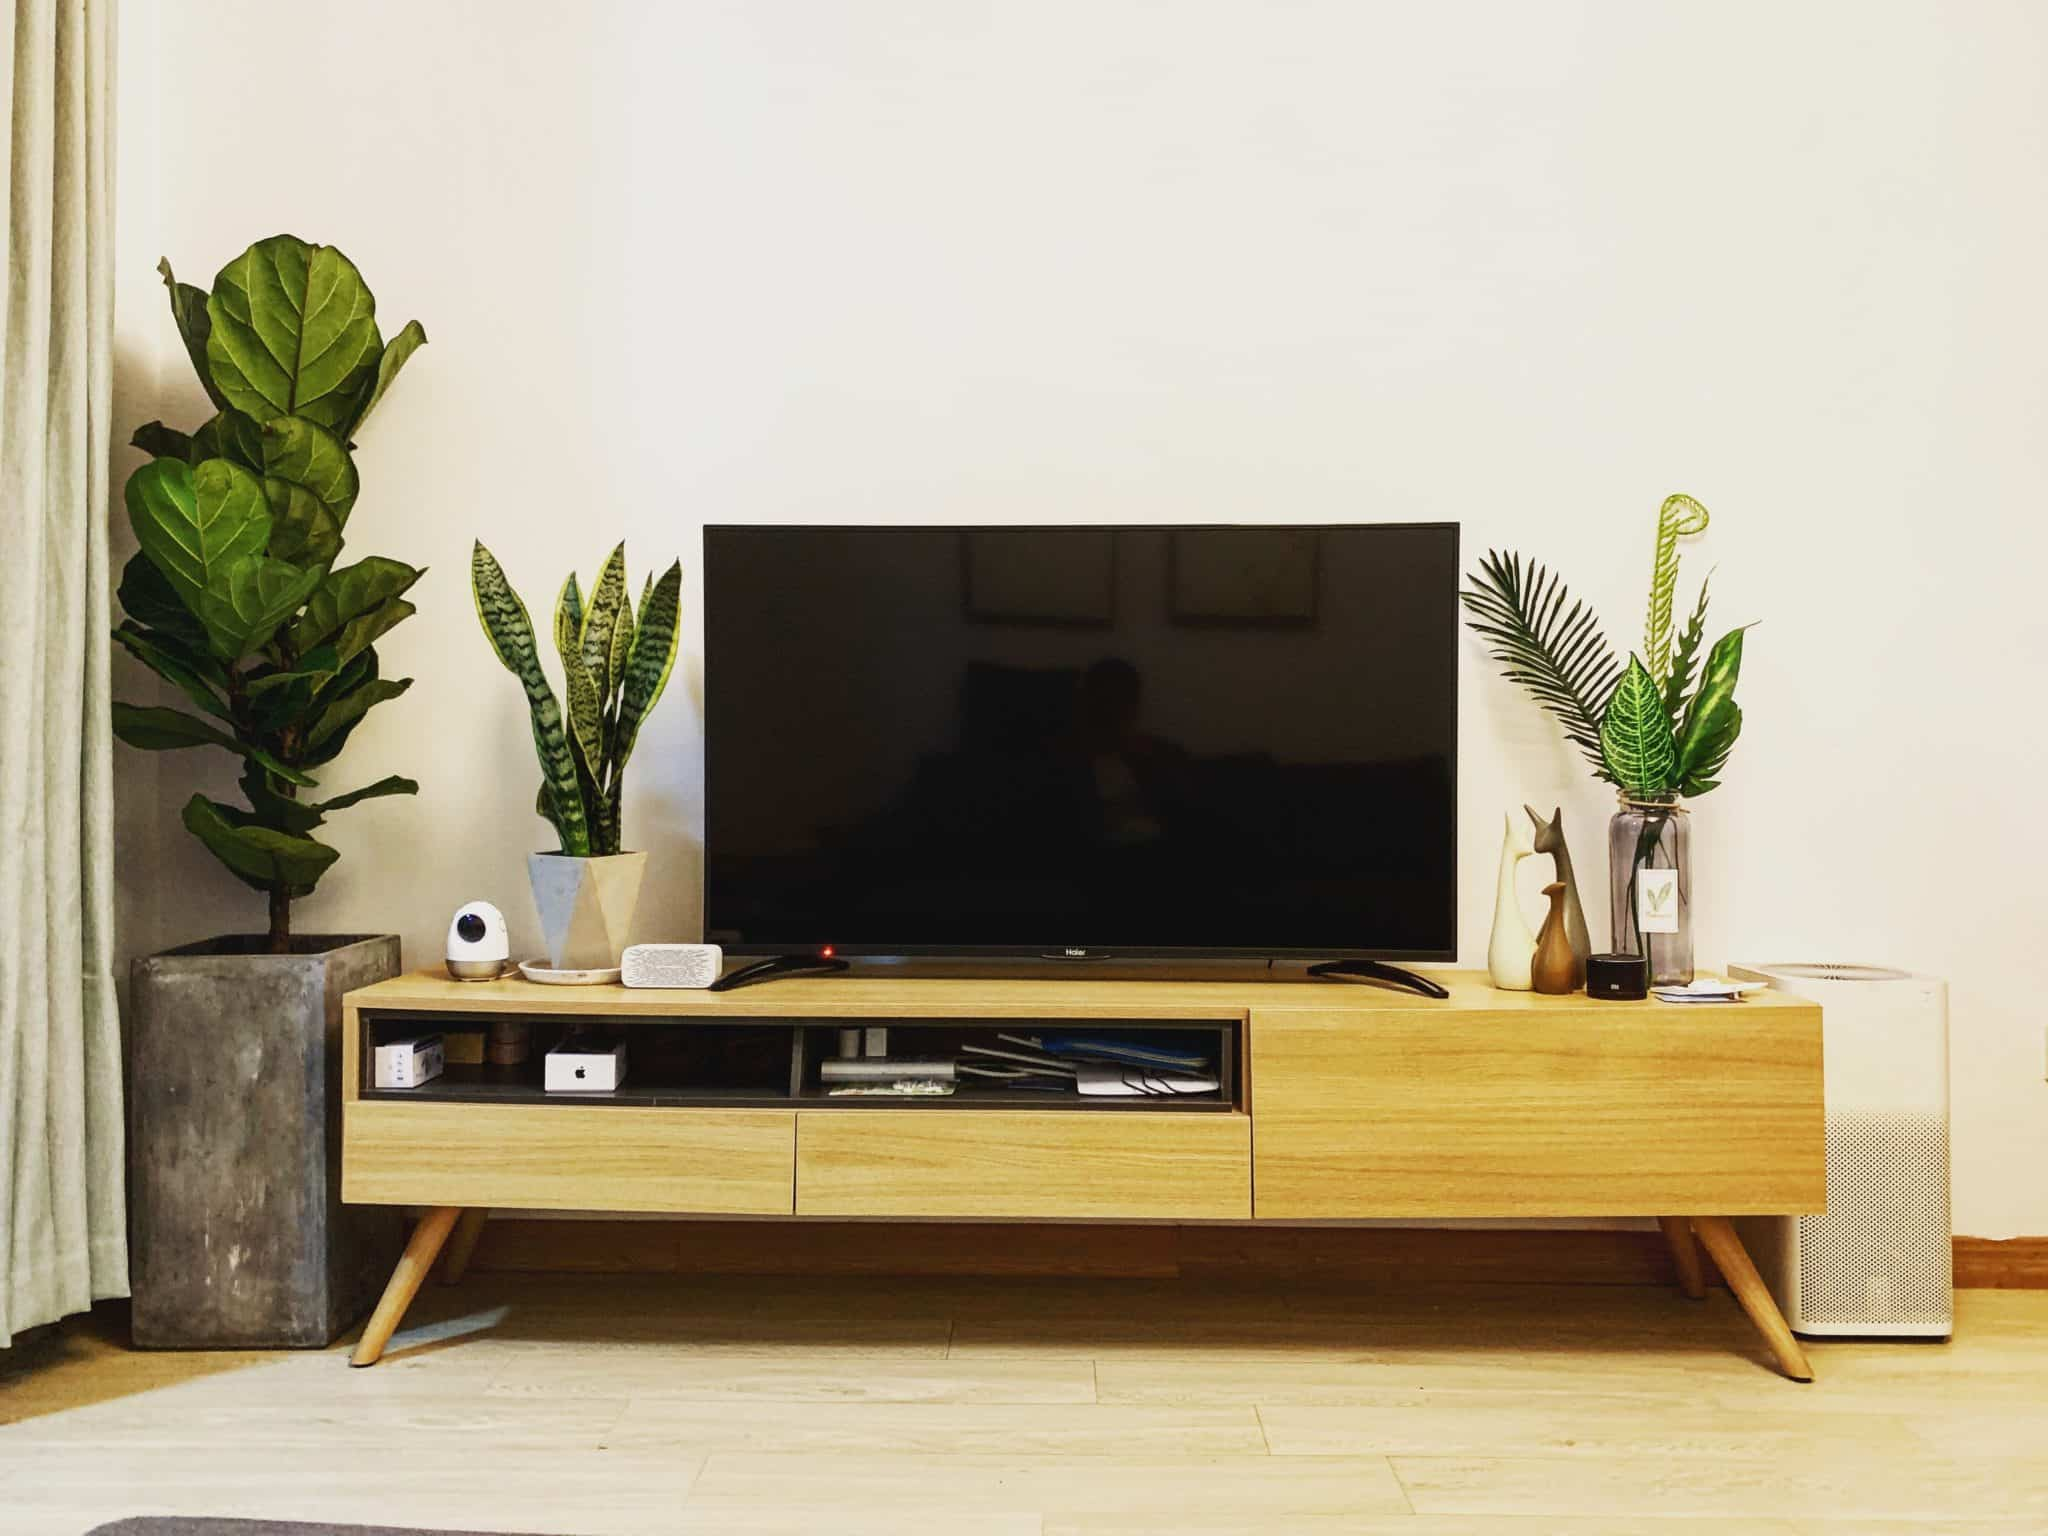 Television on a TV stand